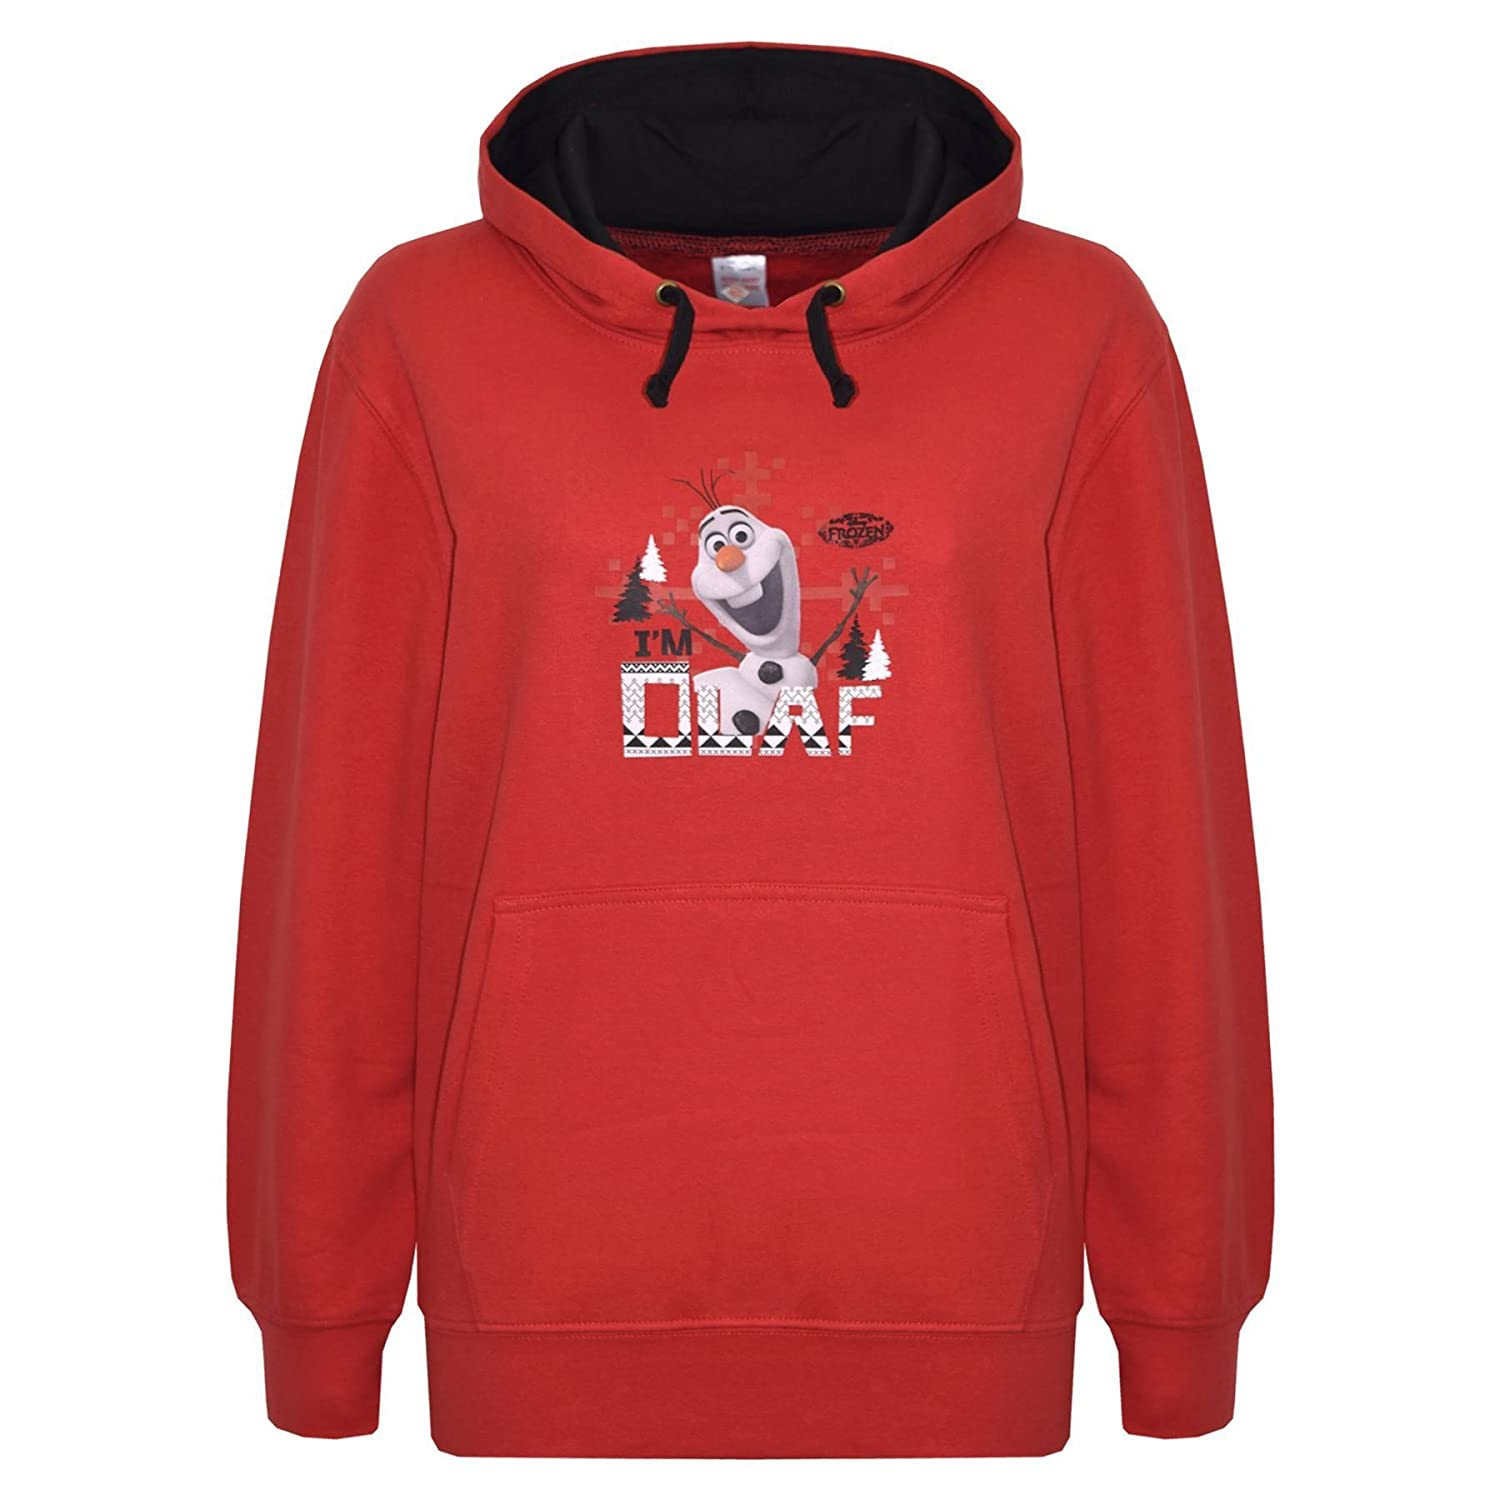 A2Z 4 Kids® Kids Hoodie Girls Boys Official Olaf Print Sweatshirt Top Hoodies New Age 7 8 9 10 11 12 Years